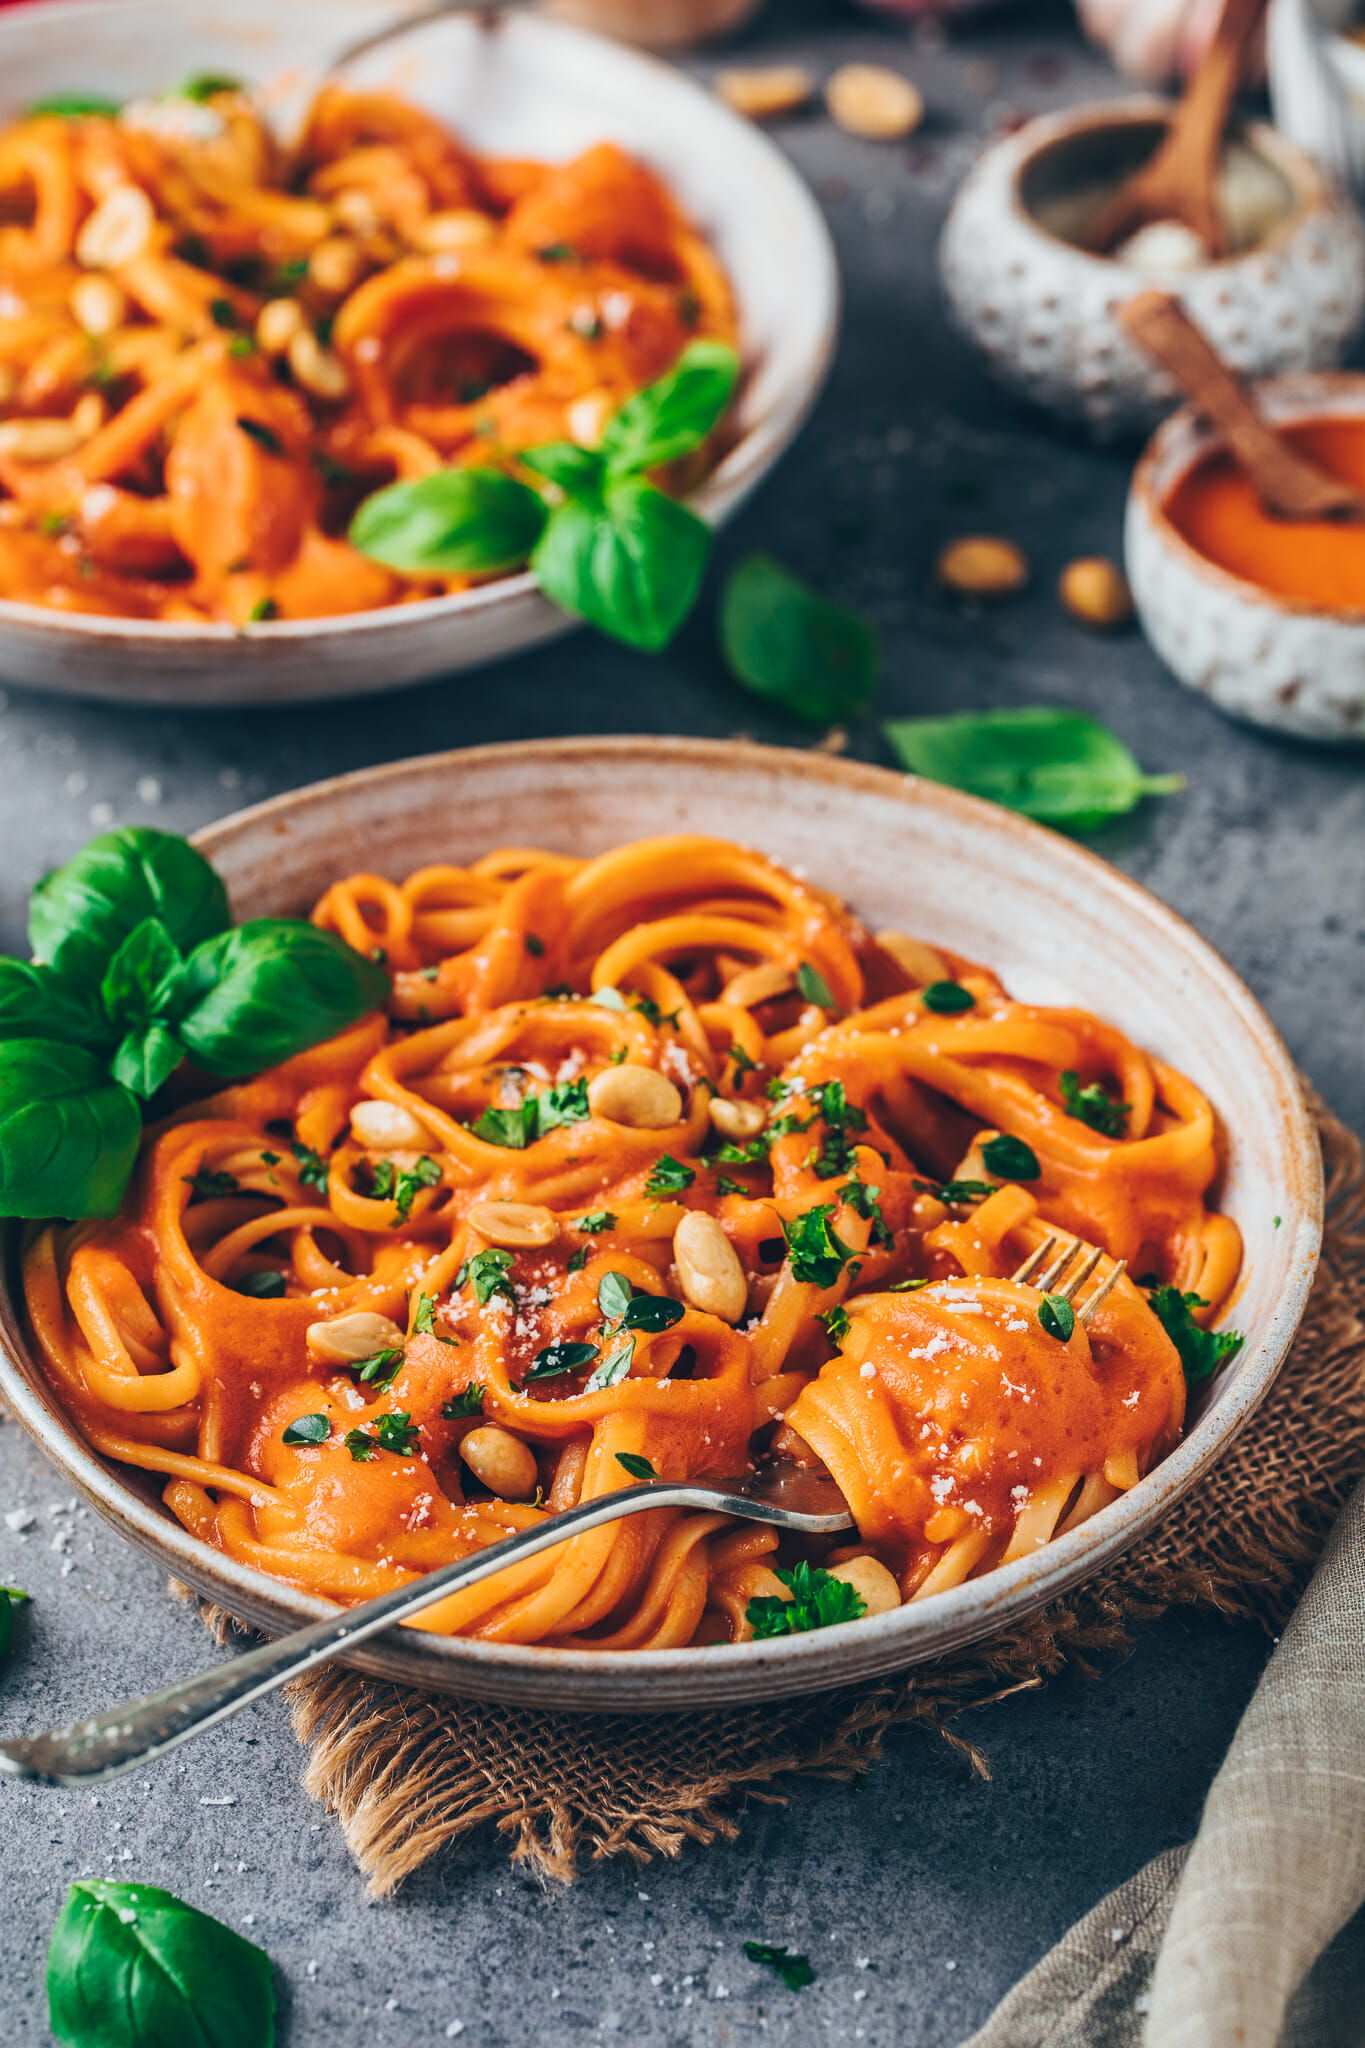 Roasted Red Pepper Pasta Sauce with fettuccine, peanuts and basil